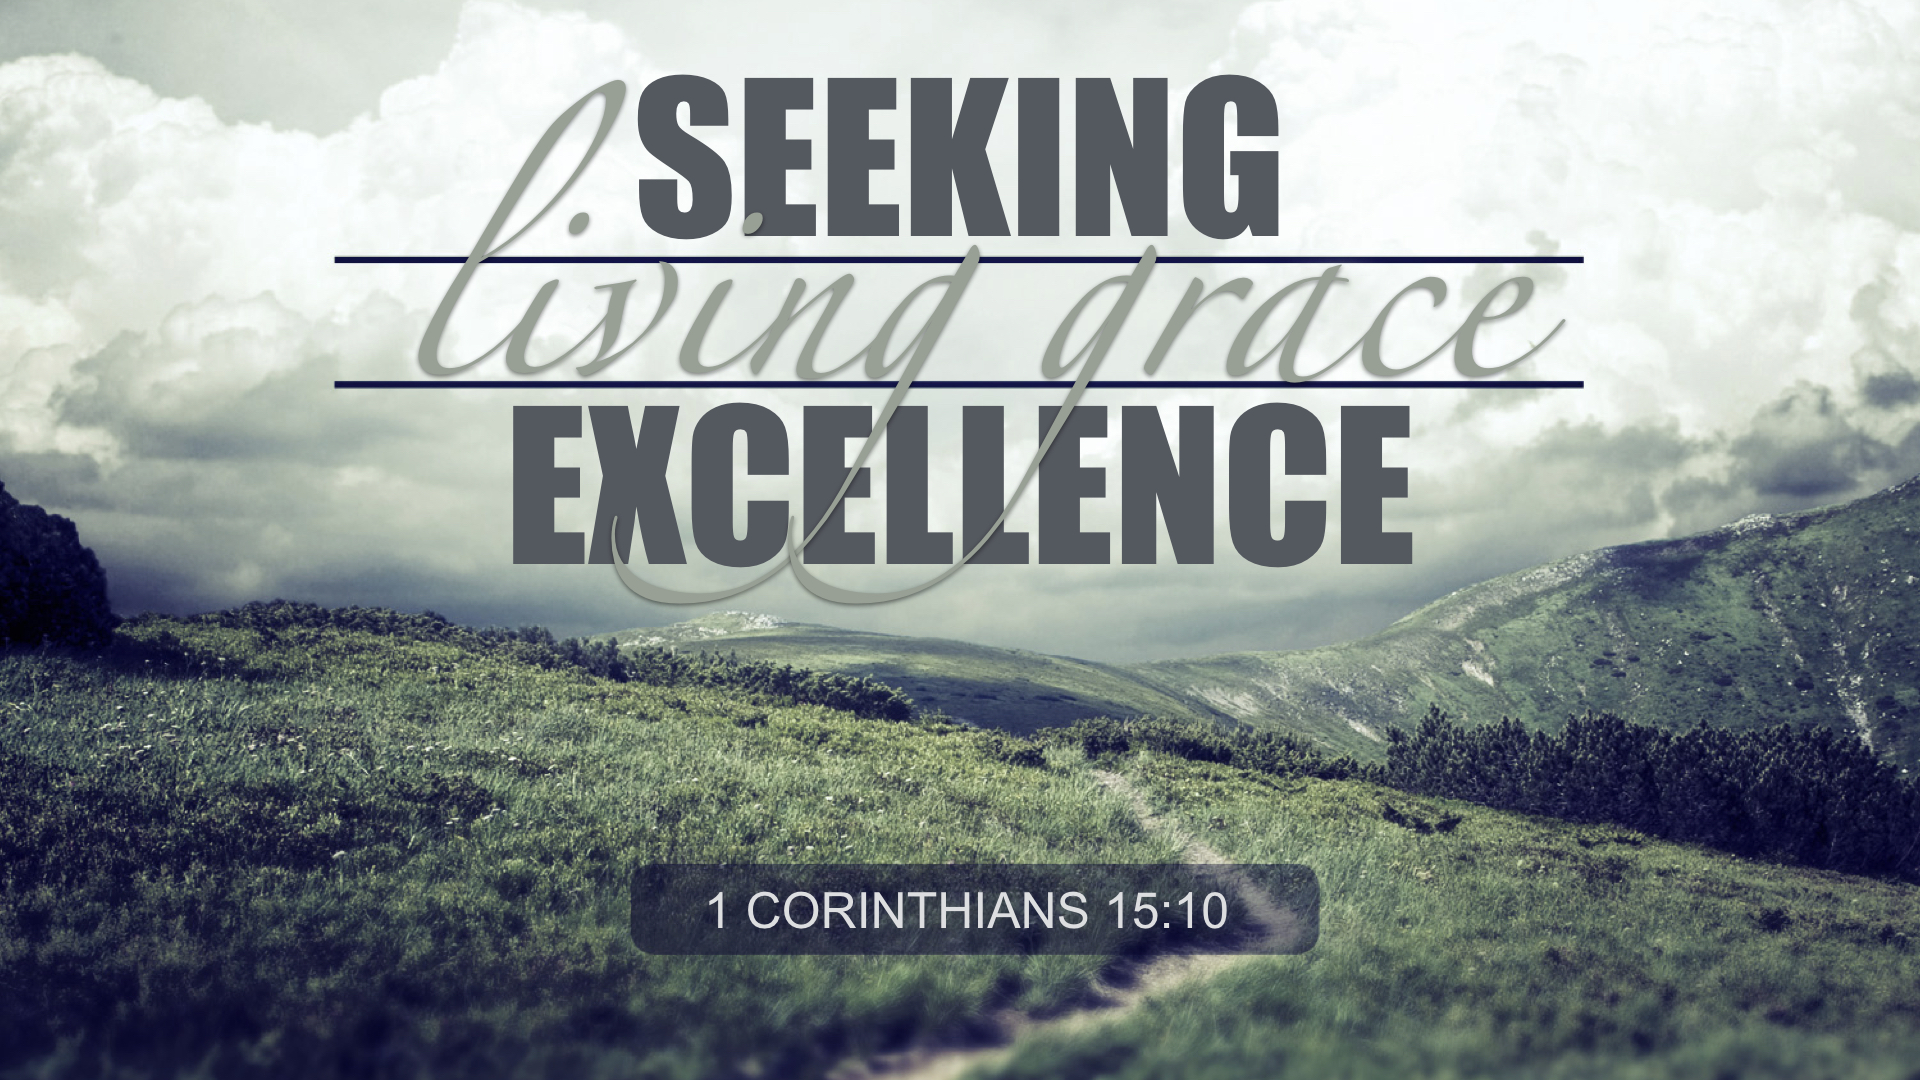 seeking excellence, living grace - MARY ANNE DE LA TORRE | 5.27.2018 | WATCH